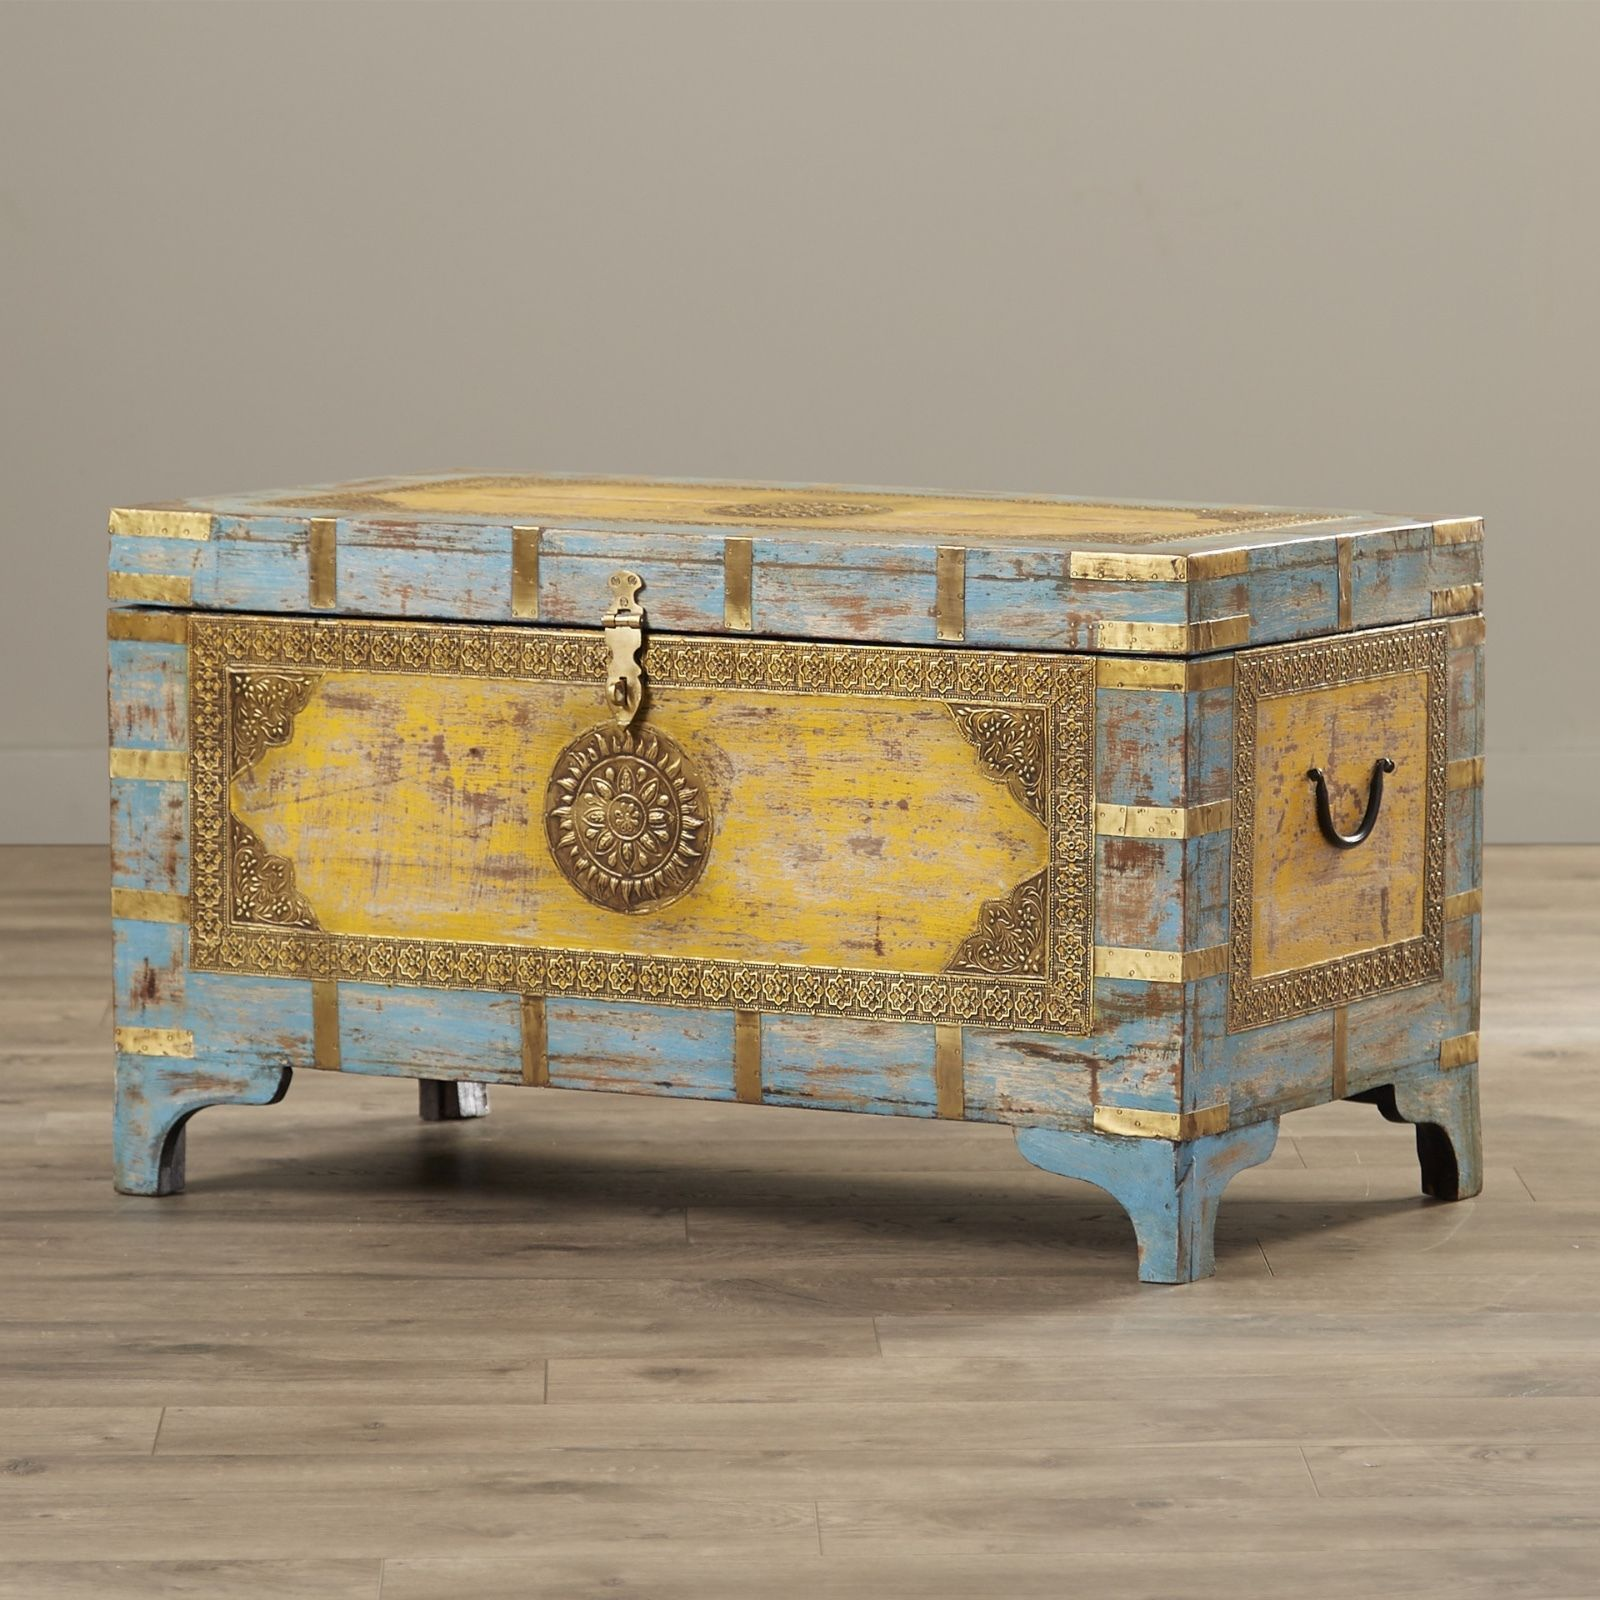 The Blue And Gold Of This Anthro Inspired Storage Trunk